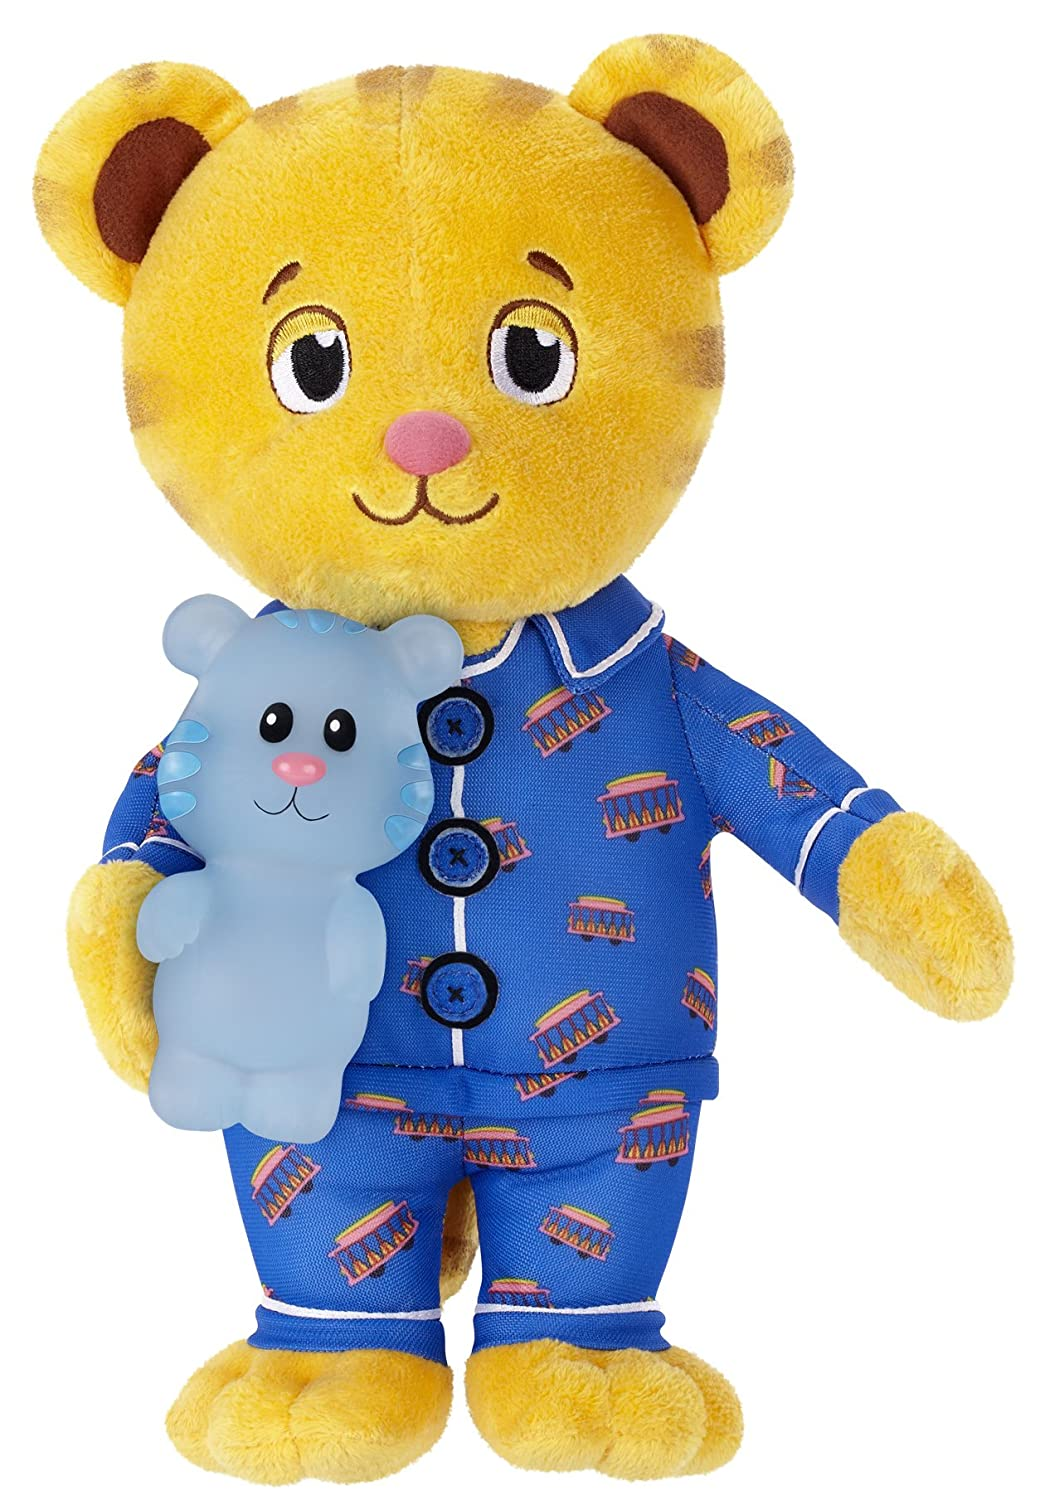 Daniel Tiger's Neighborhood Goodnight Daniel and Tige-y Musical Toy by Daniel Tiger's Neighborhood